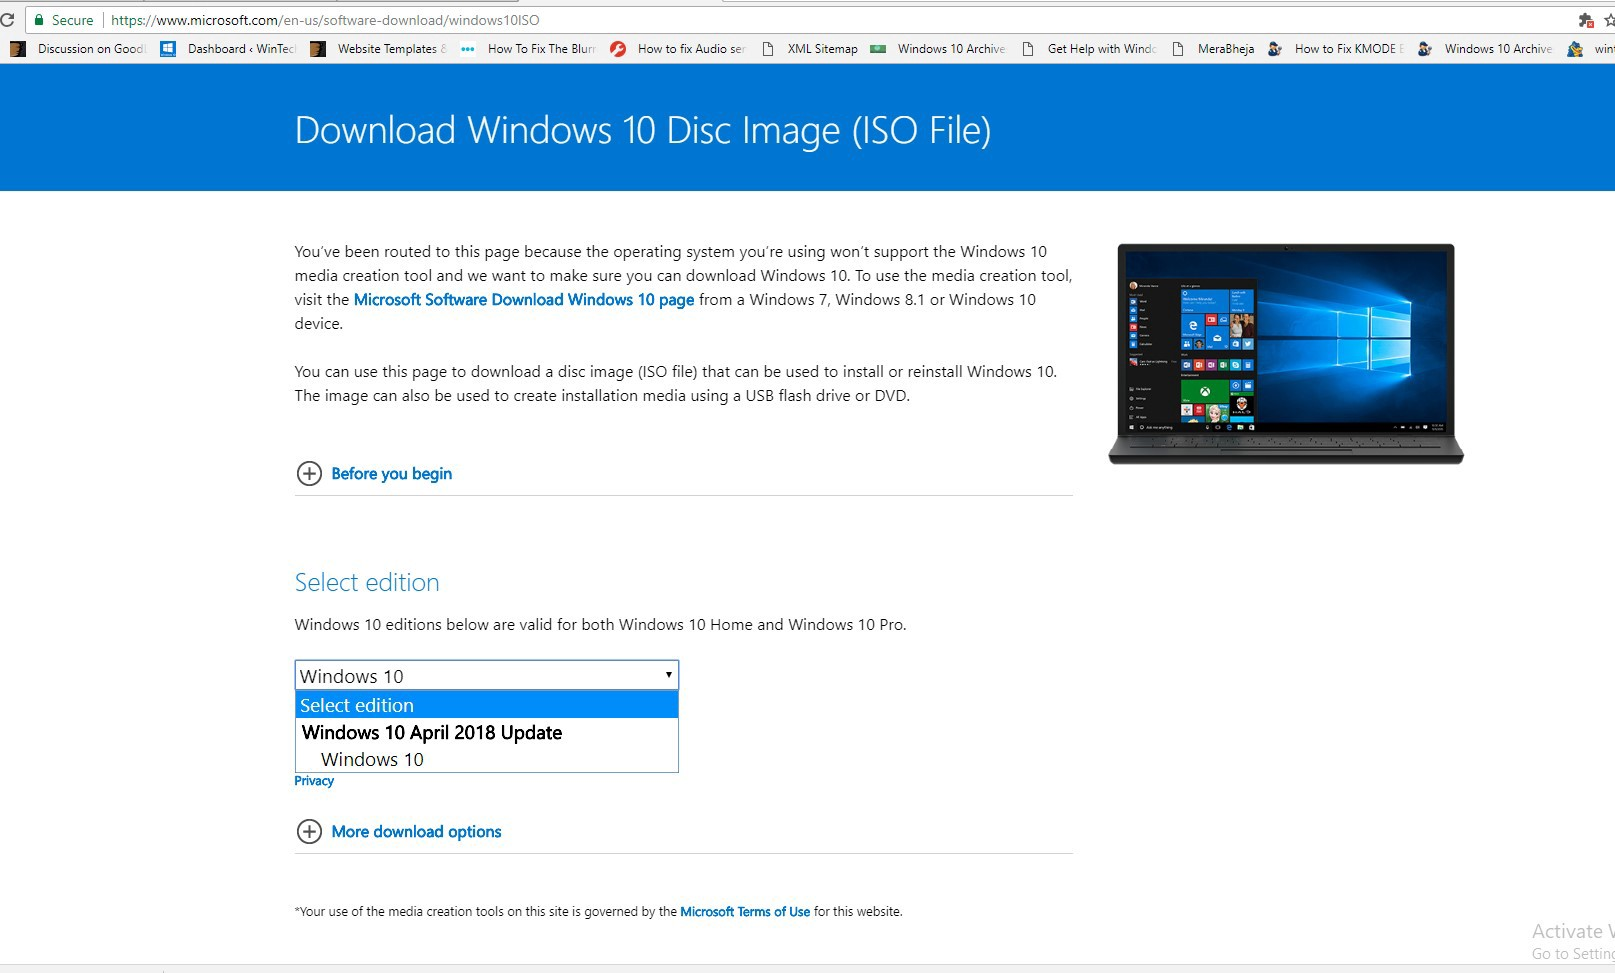 Download Windows 10 ISO free from Microsoft